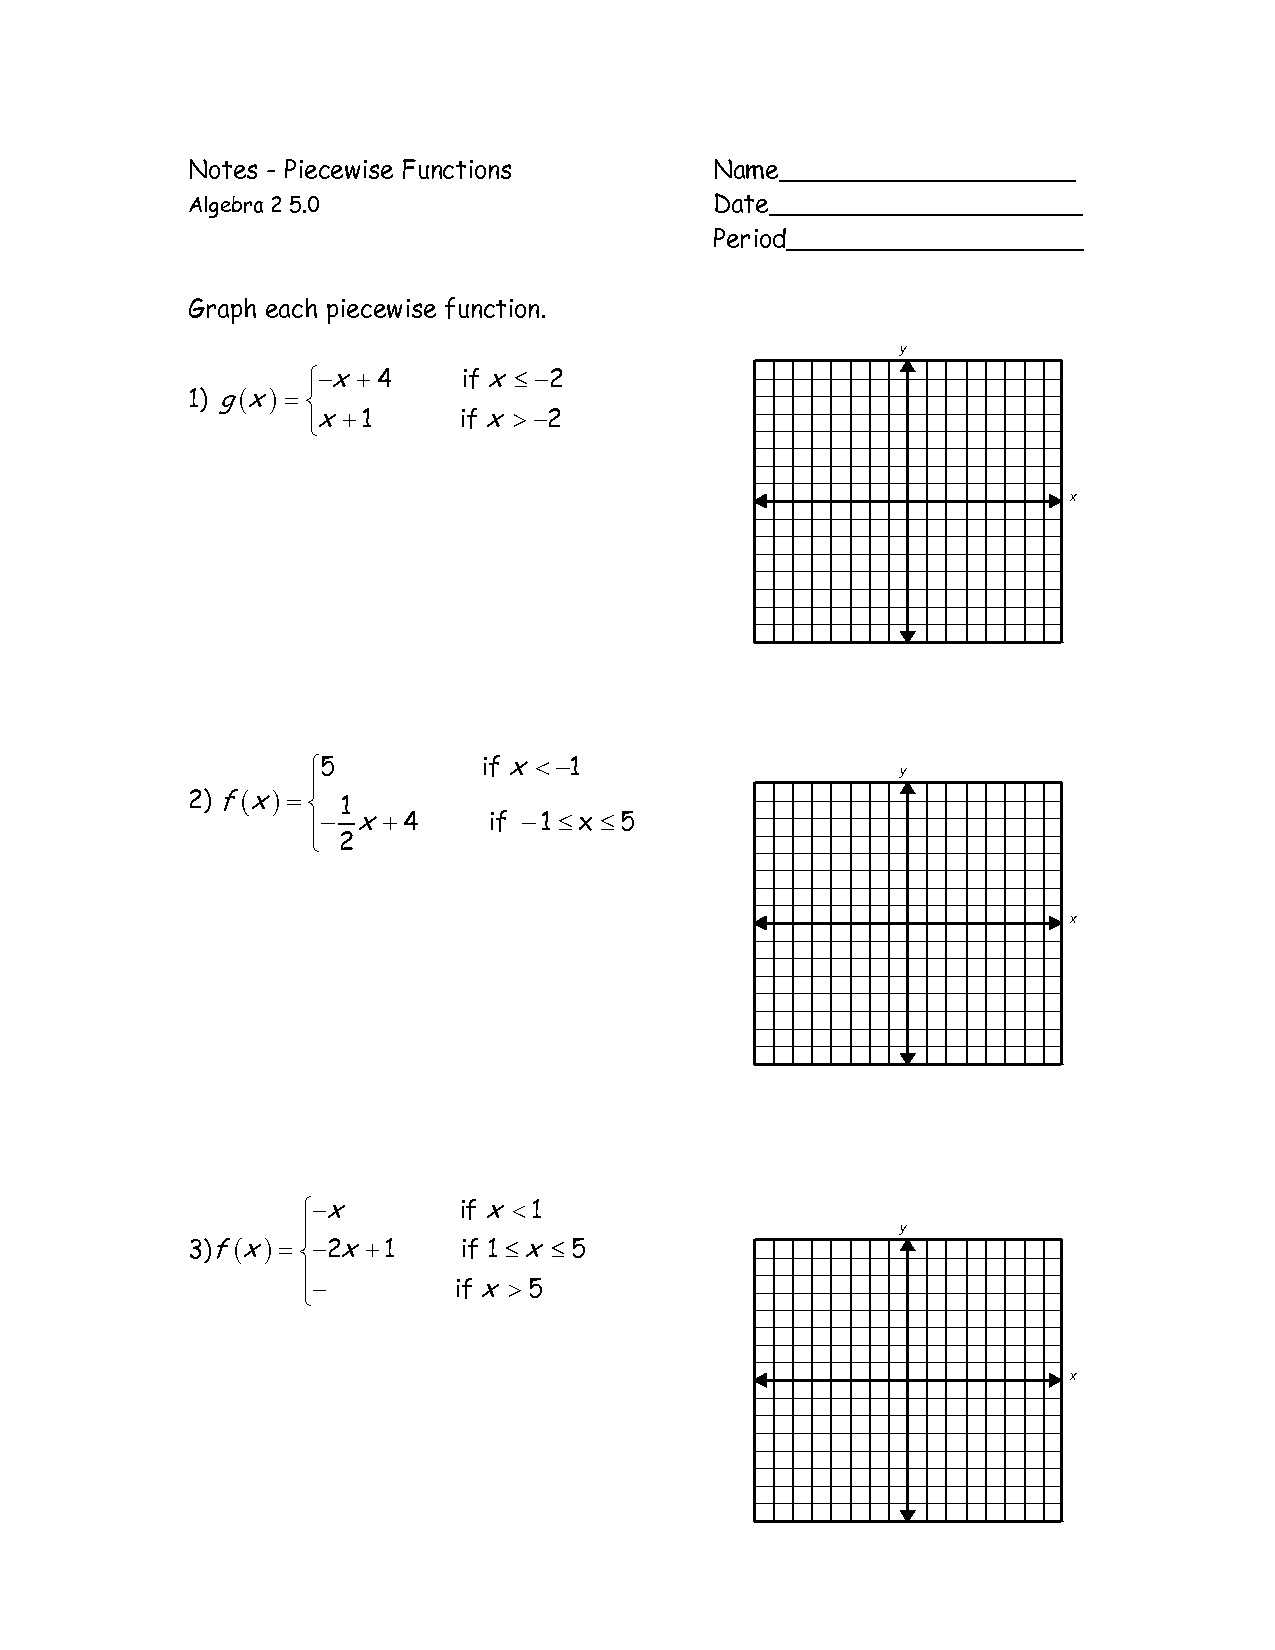 Piecewise Functions Worksheet 2 together with Graphing Piecewise Functions Worksheet Fresh Kindergarten Graphing